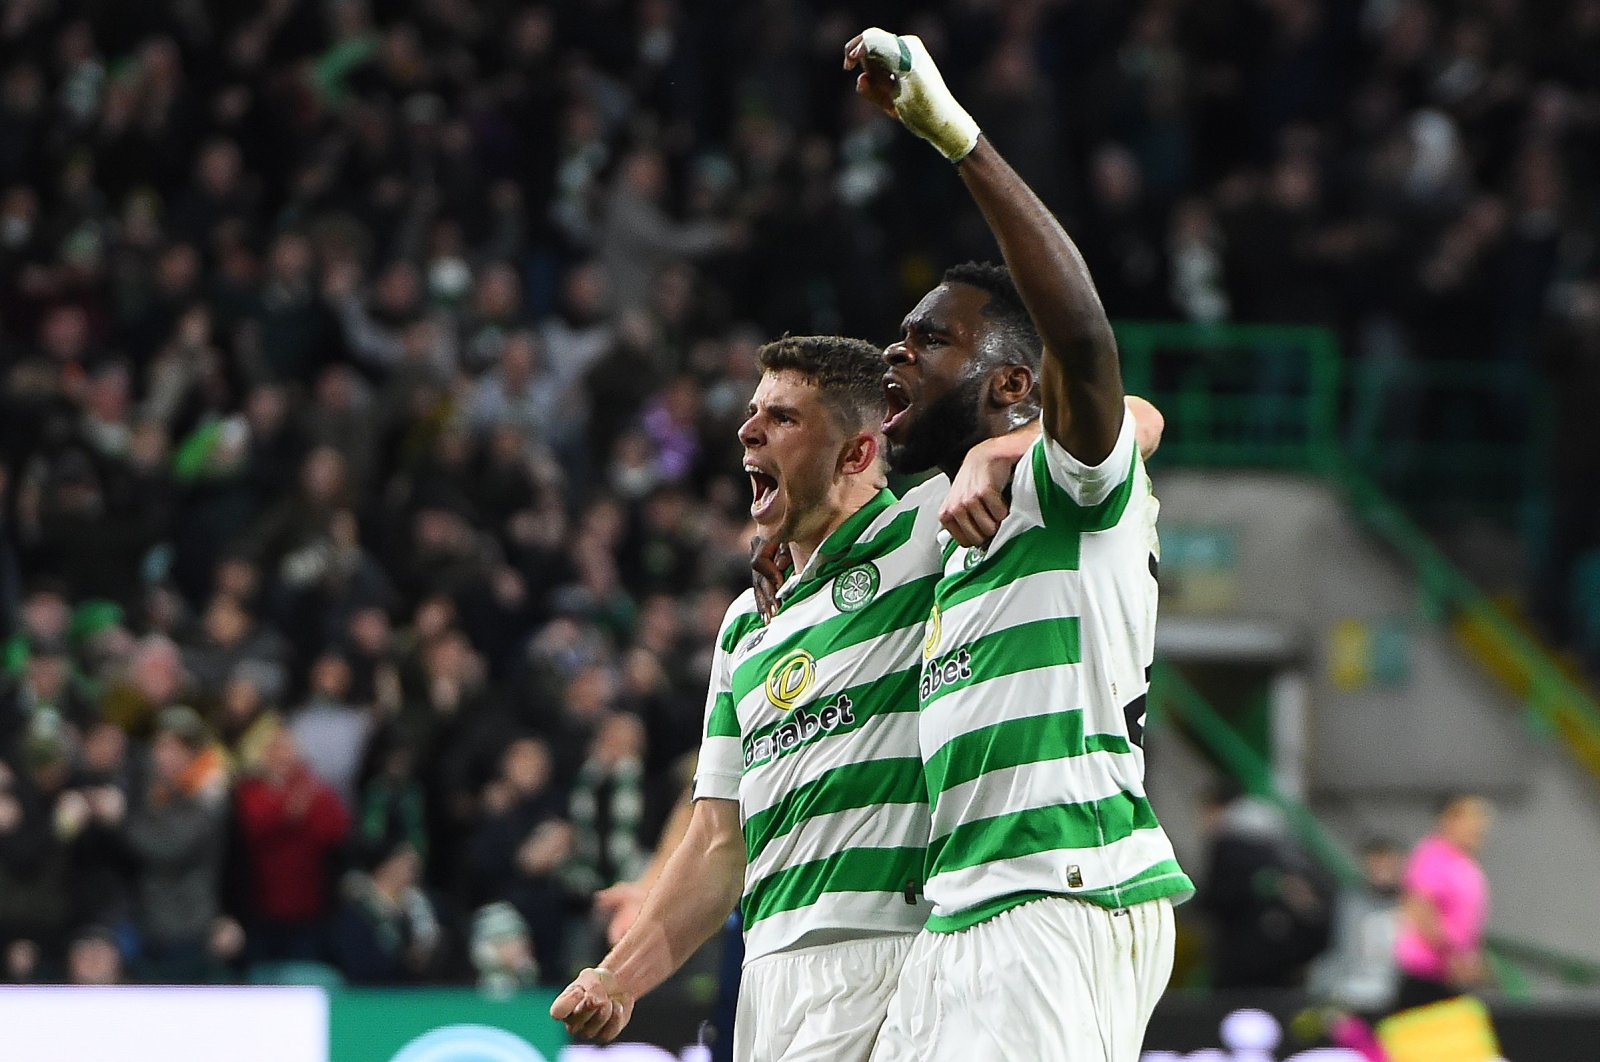 Celtic's midfielder Ryan Christie (L) celebrates scoring the equalizing goal with forward Odsonne Edouard during a match between Celtic and Lazio, in Glasgow, Scotland, Oct. 24, 2019. (AFP Photo)